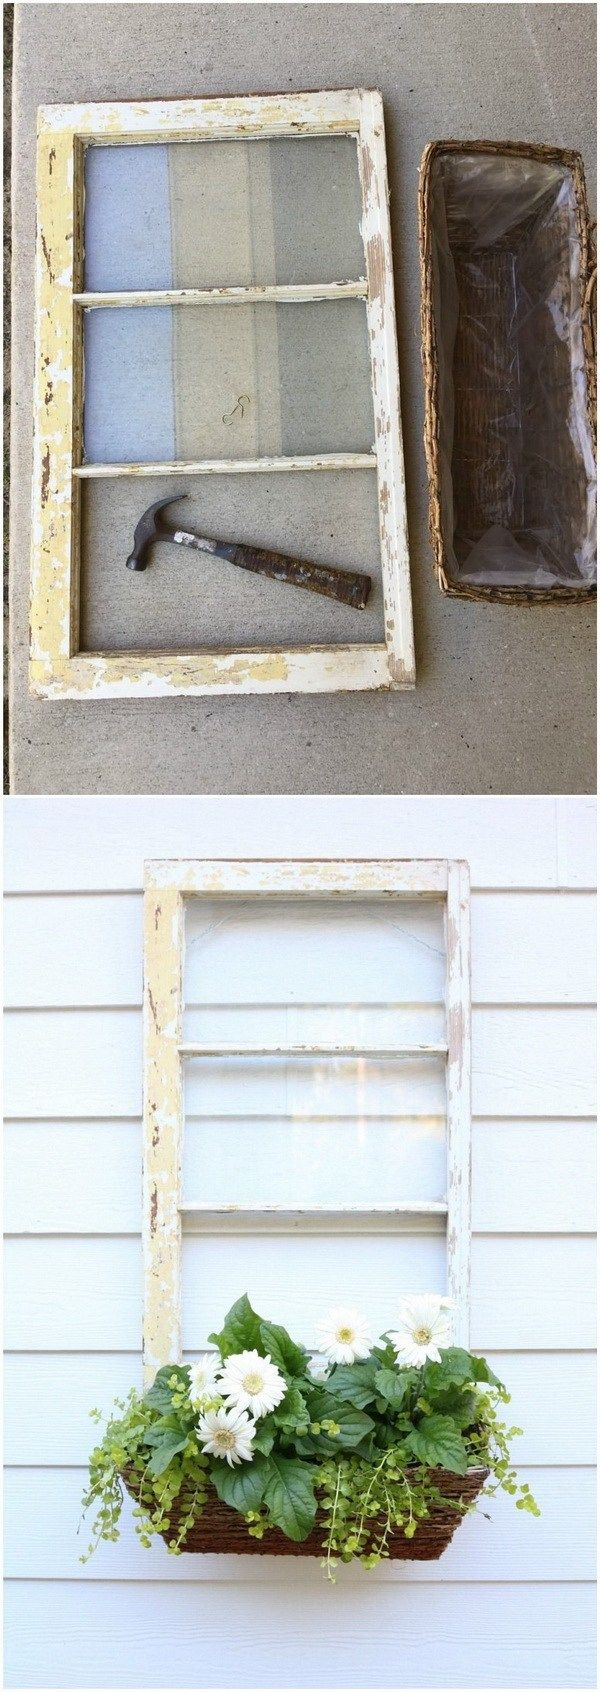 Decorate With Old Windows Top 25 Best Repurposed Window Ideas Ideas On Pinterest Diy Old